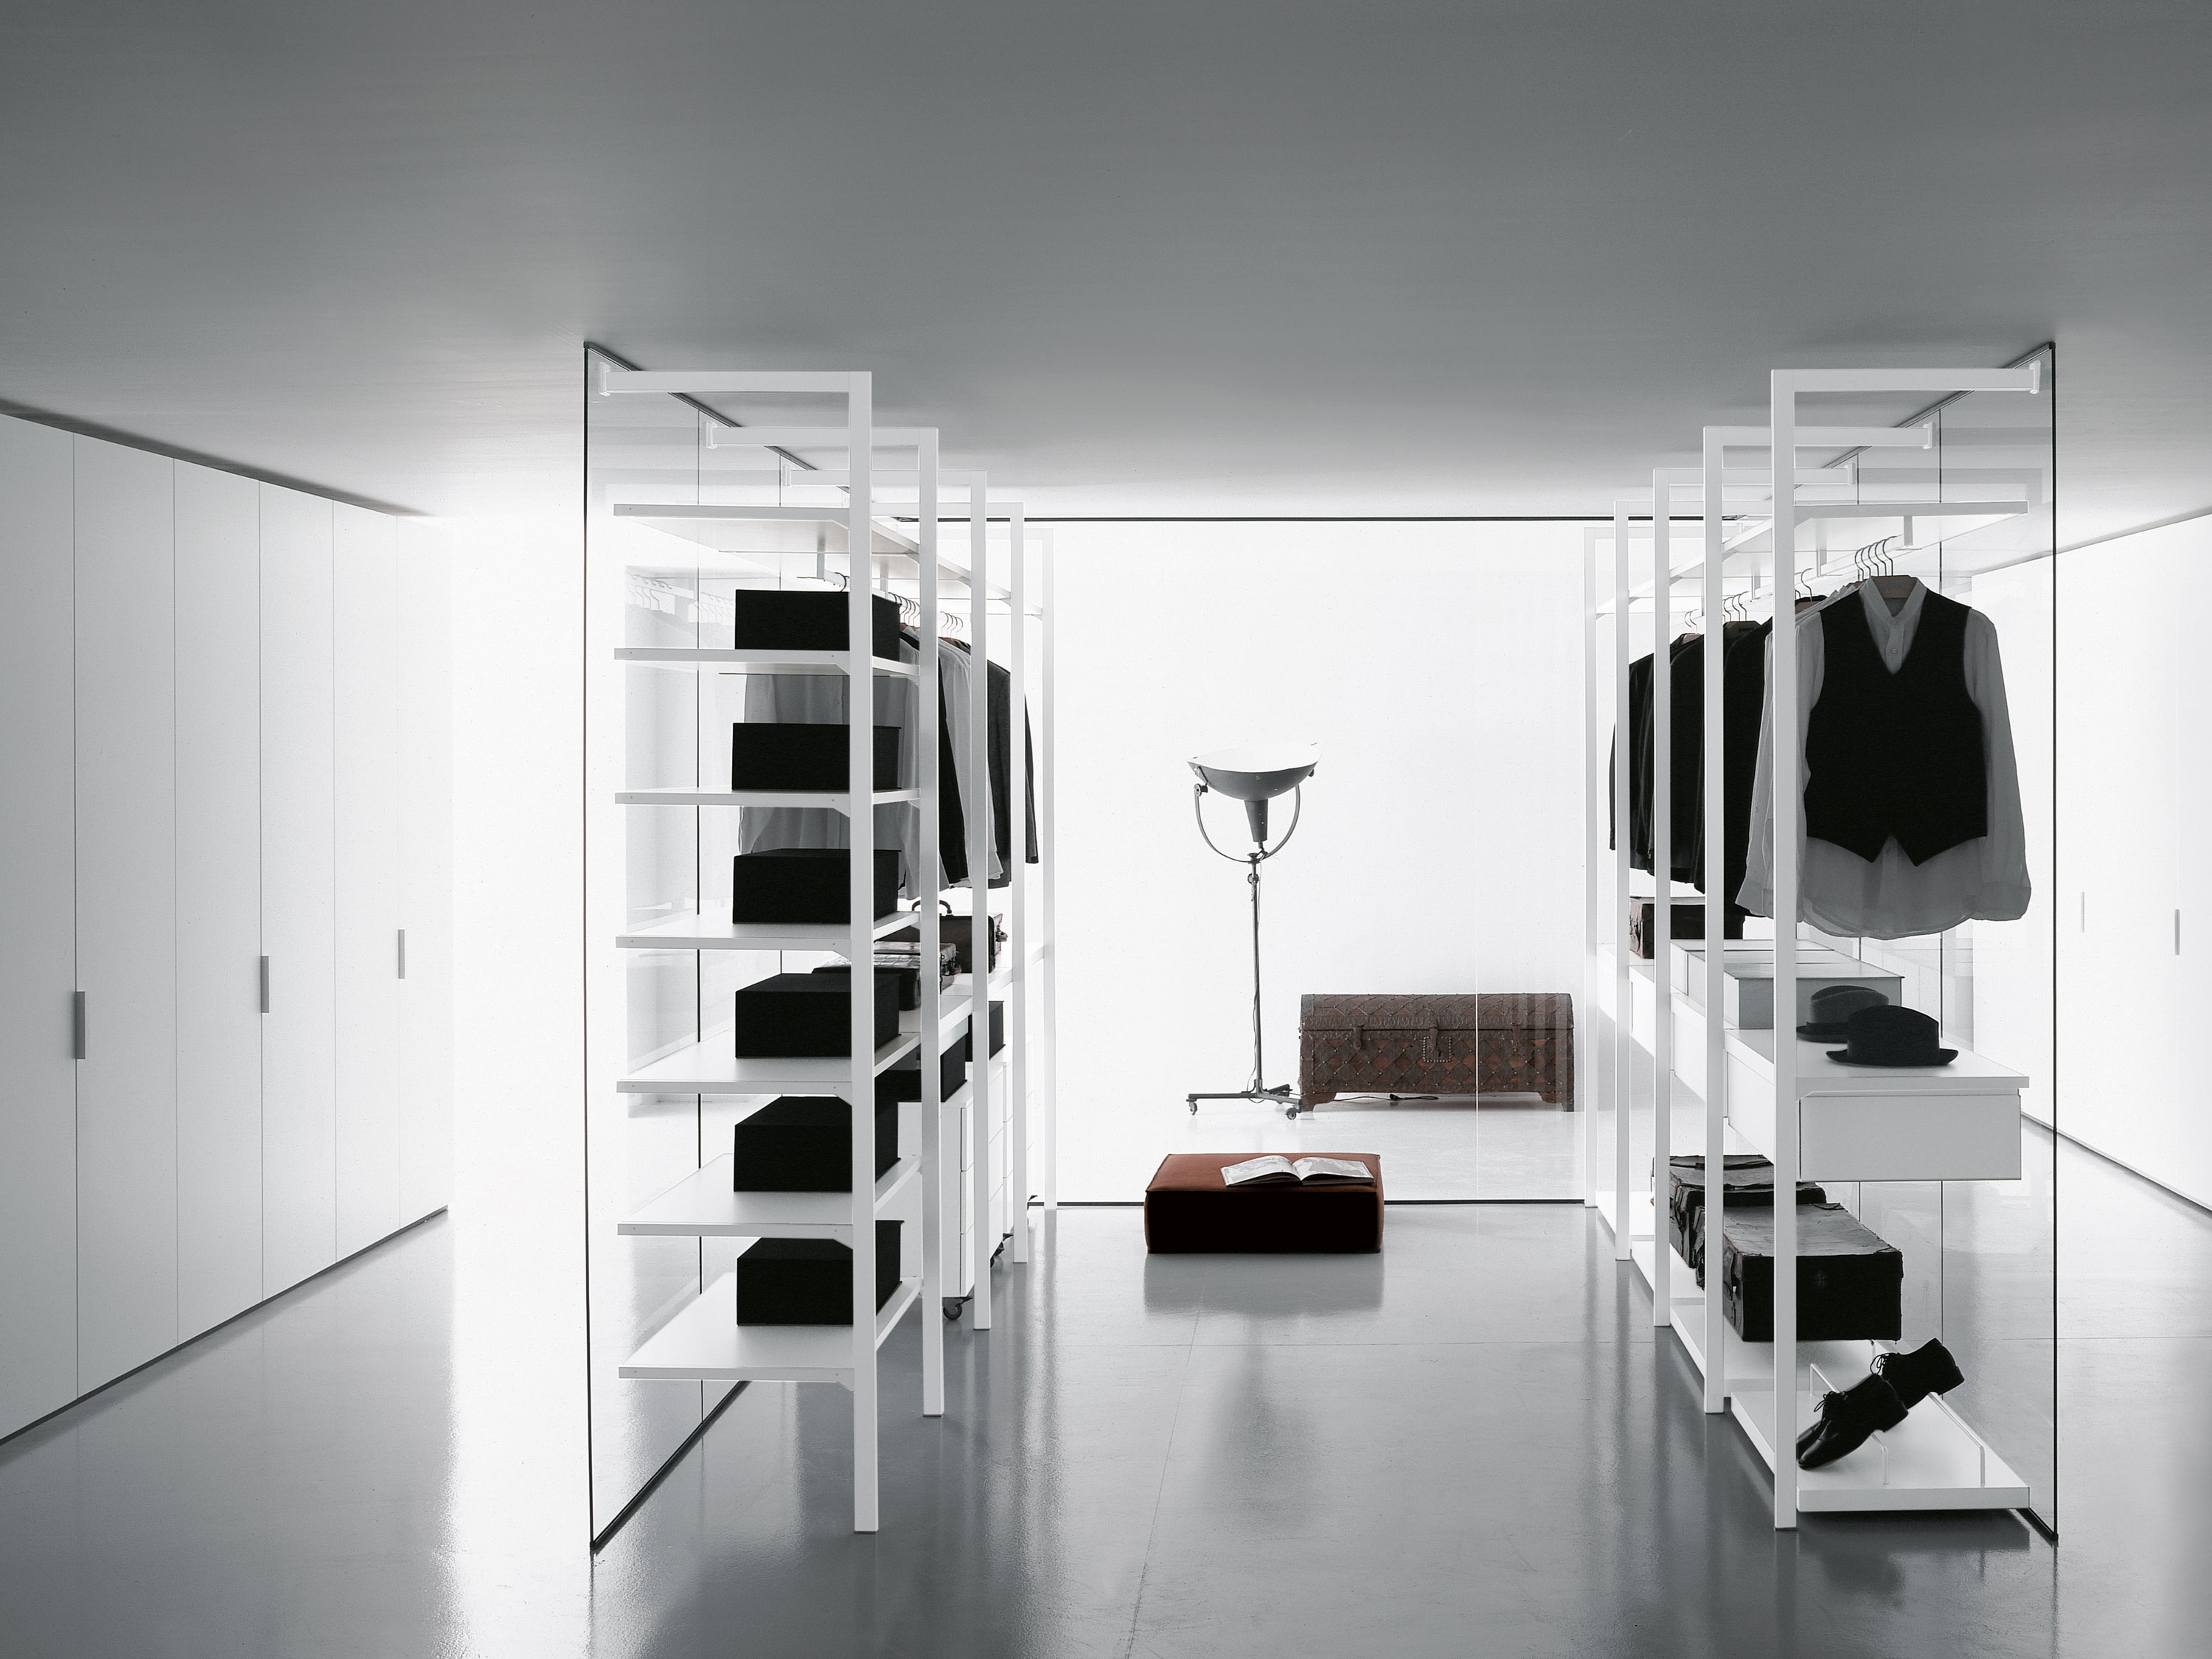 walkin wardrobes ideas in closet leather design from wood made dark walk combination interiors and wardrobe of